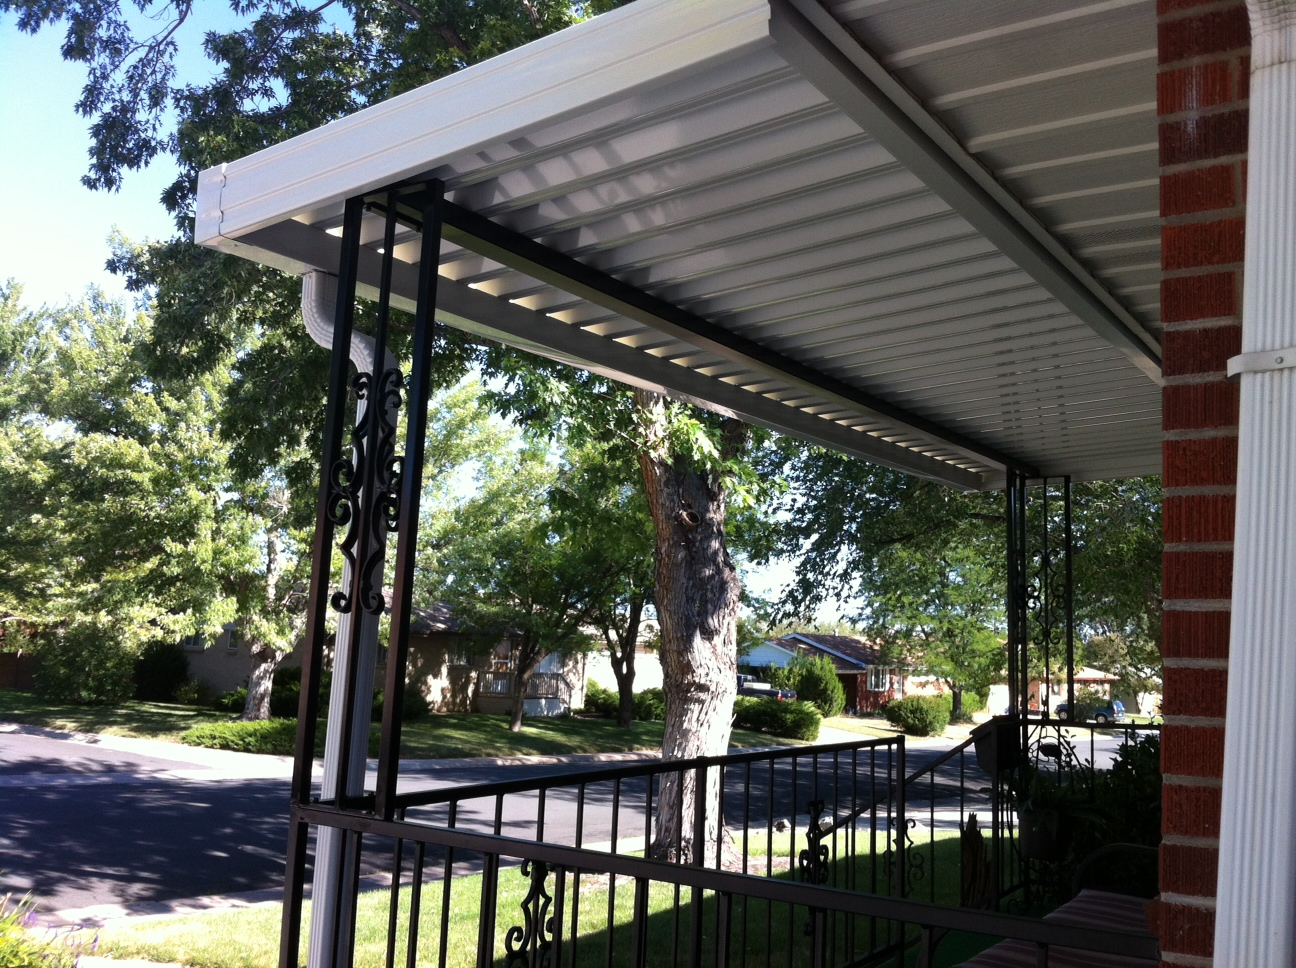 Metal Awnings & Carports on back yard ponds, back yard shed plans, back yard courtyard ideas, back yard storage ideas, back yard corner lot ideas, back yard lounge ideas, back yard decks ideas, back yard bbq ideas, back yard hot tub ideas, back yard fountain ideas, back yard pergola ideas, back yard garden ideas, back yard fence ideas, back yard compost bin ideas, back yard spa ideas, back yard inground swimming pool ideas,